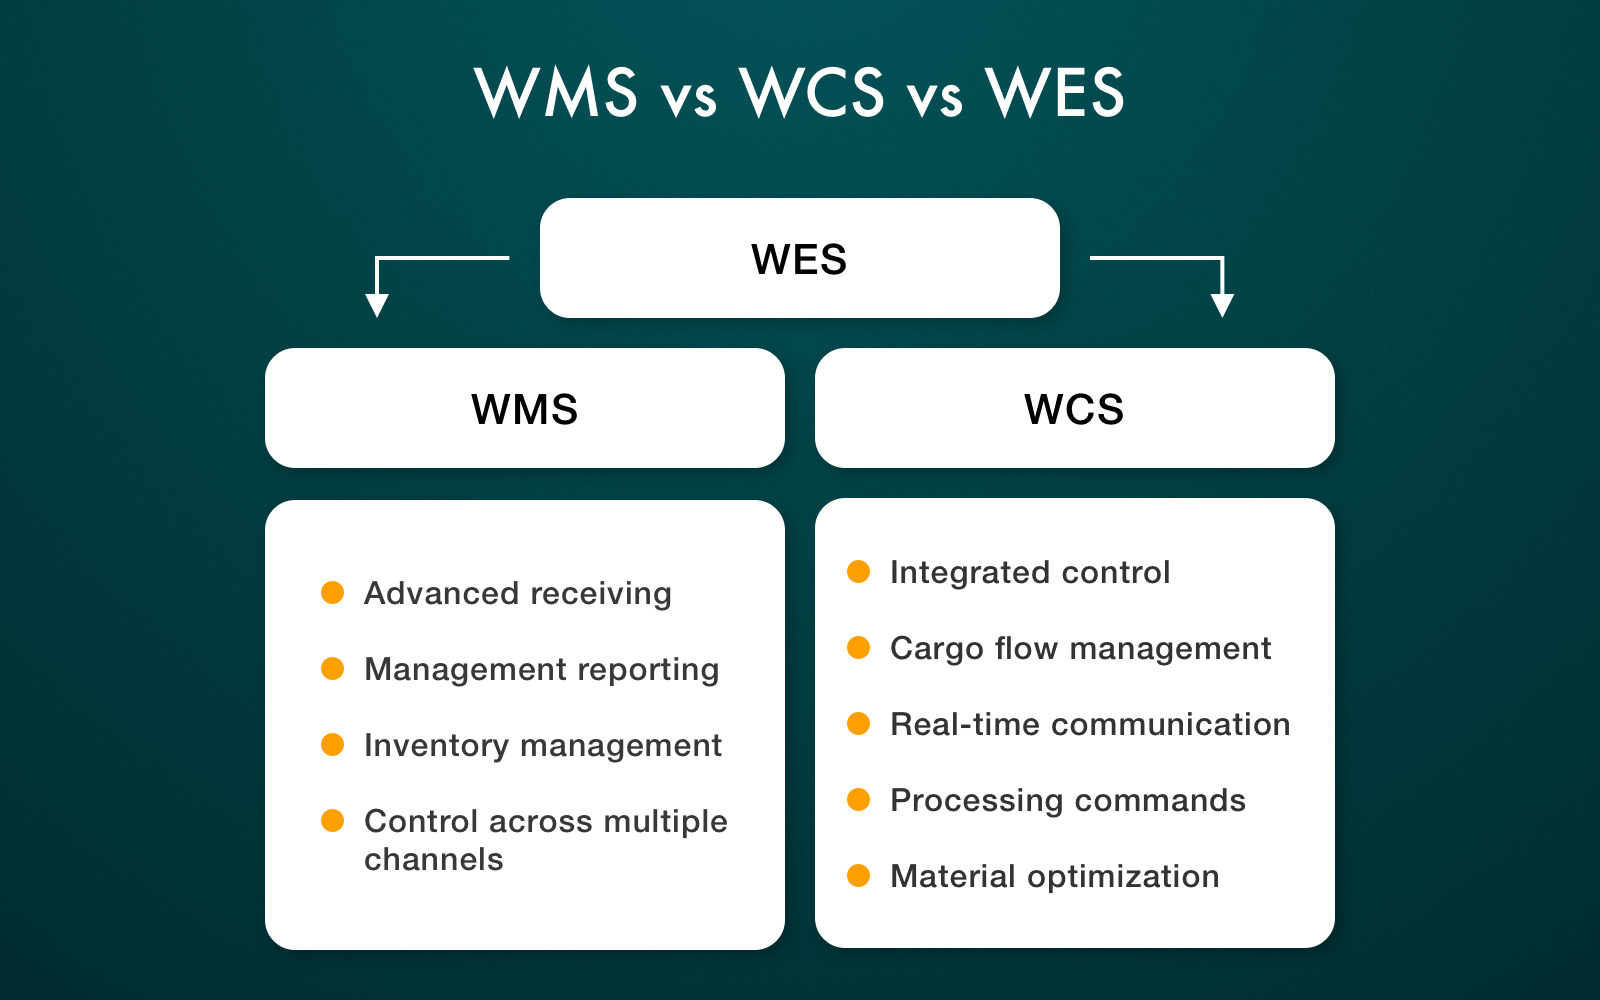 WMS vs WCS vs WES compared